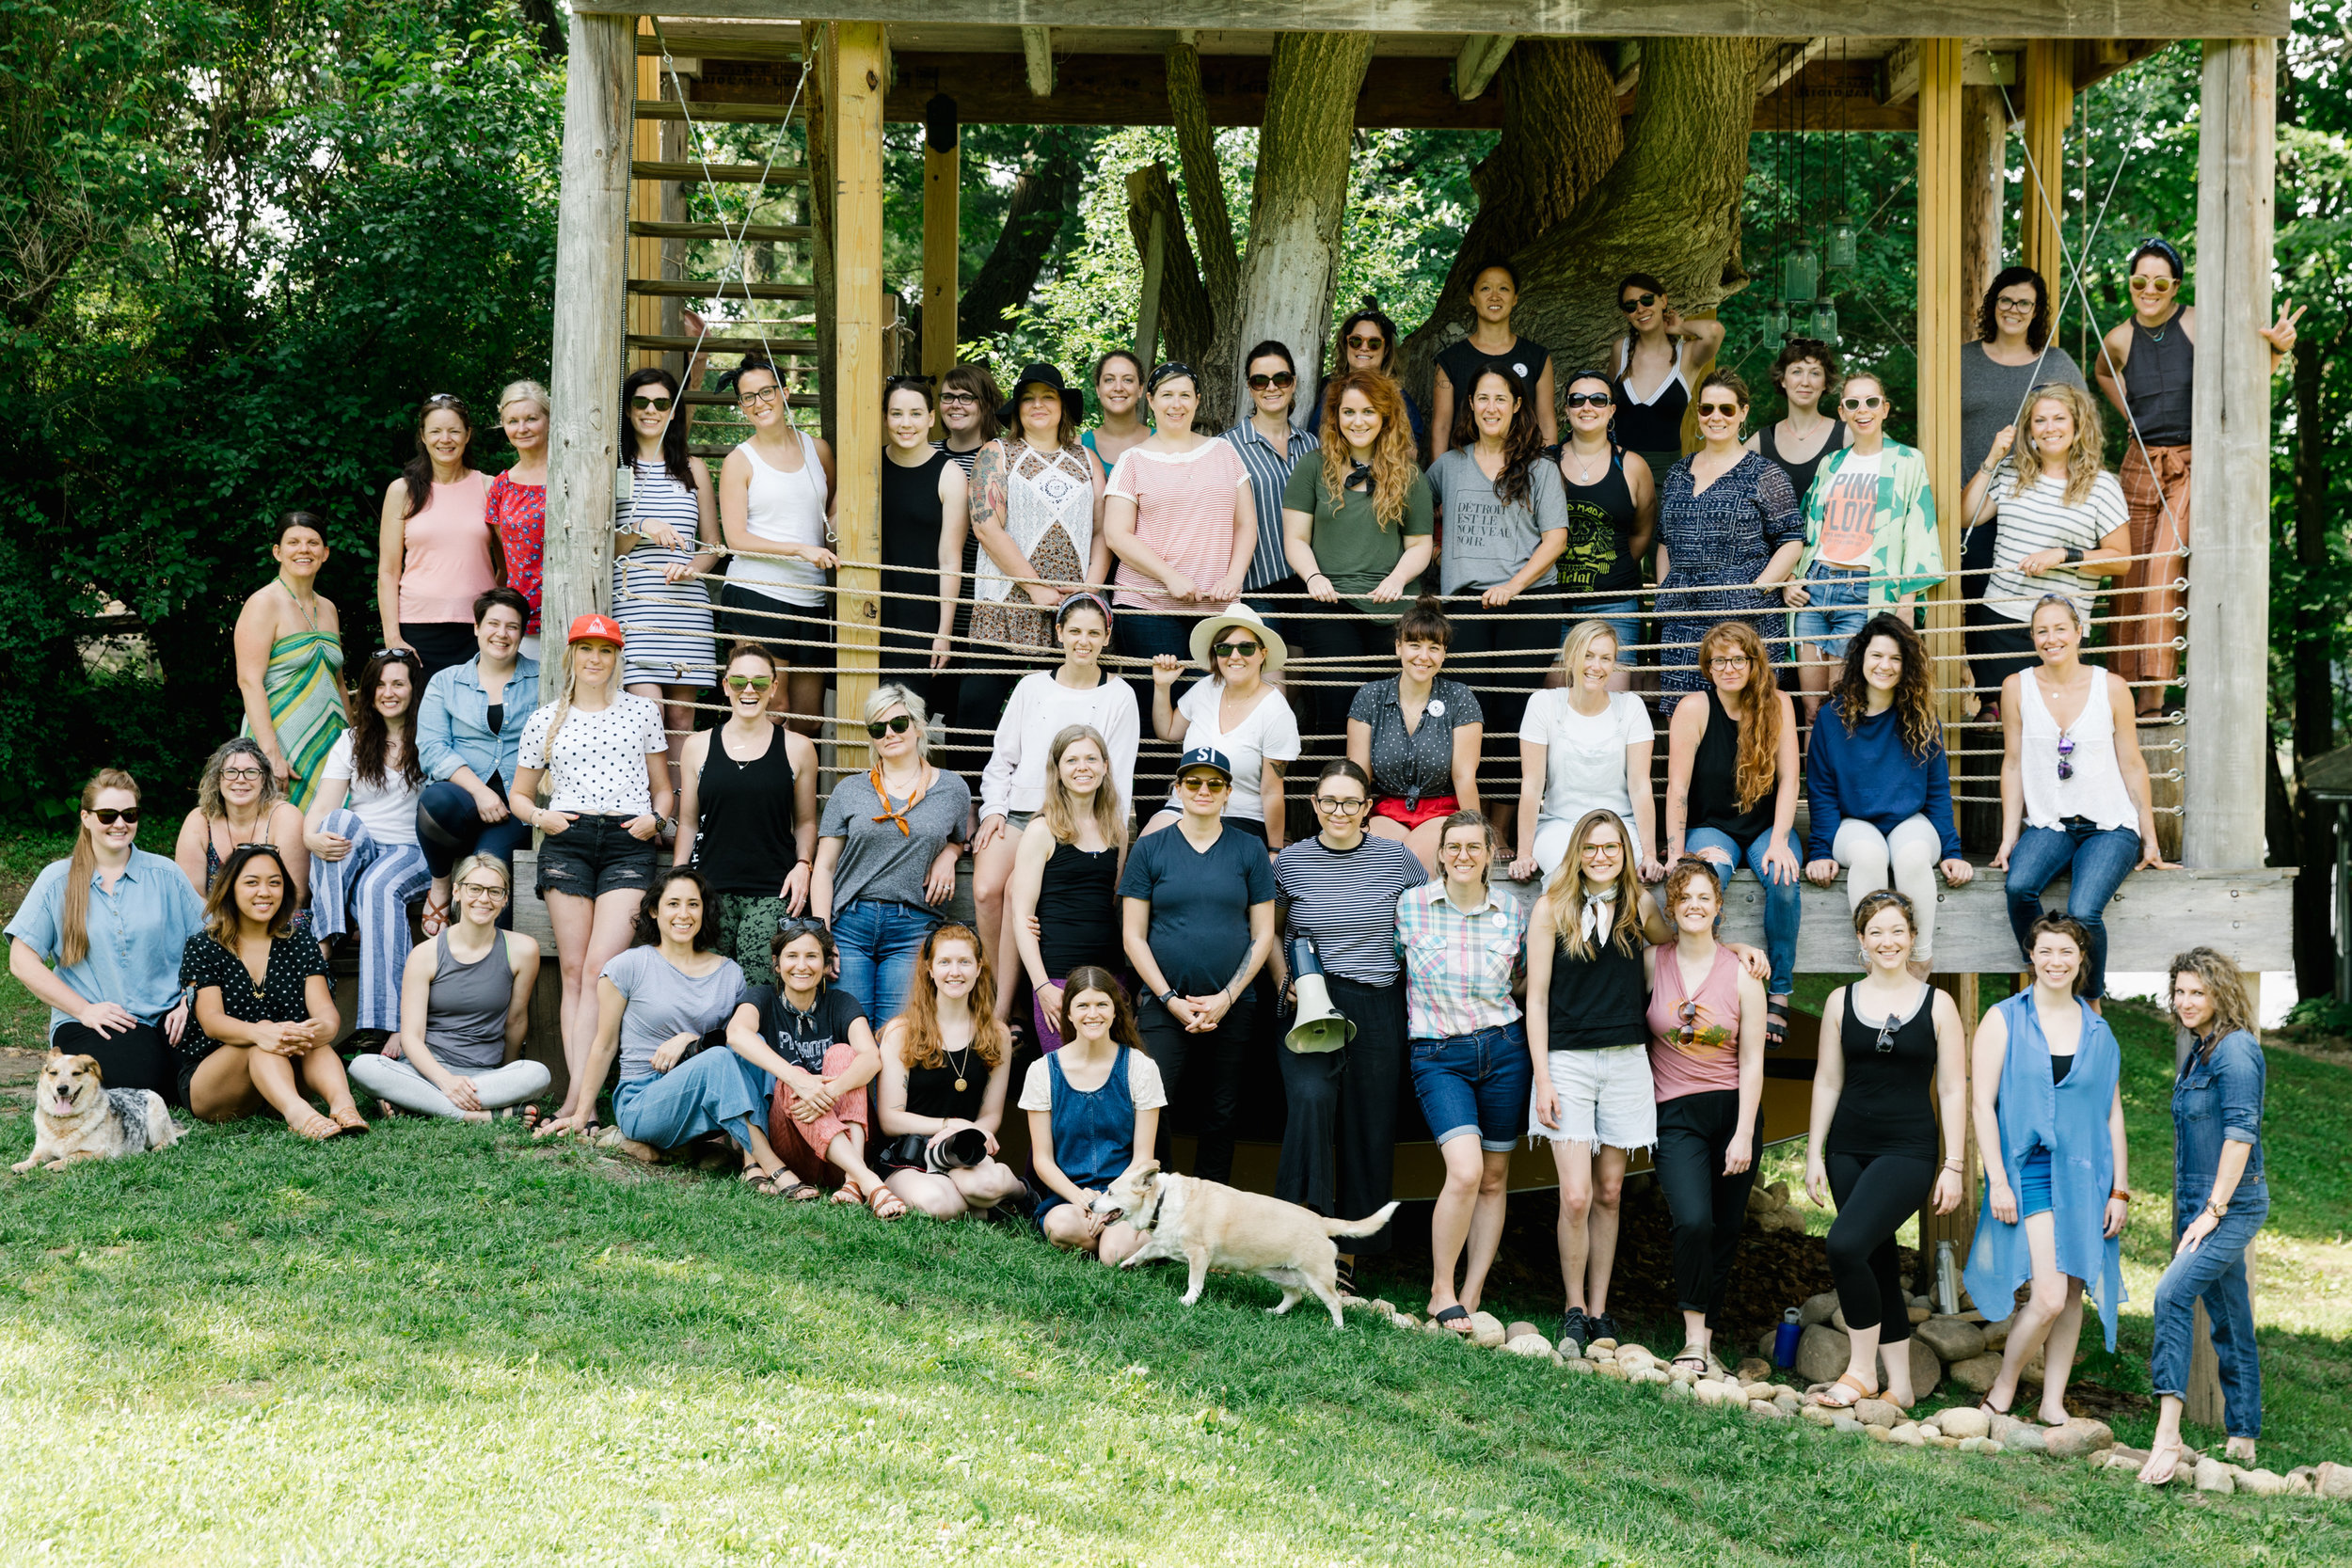 The group of women who attended Let's Camp 2018 at Camp Wandawega in Elkhorn, Wisconsin.